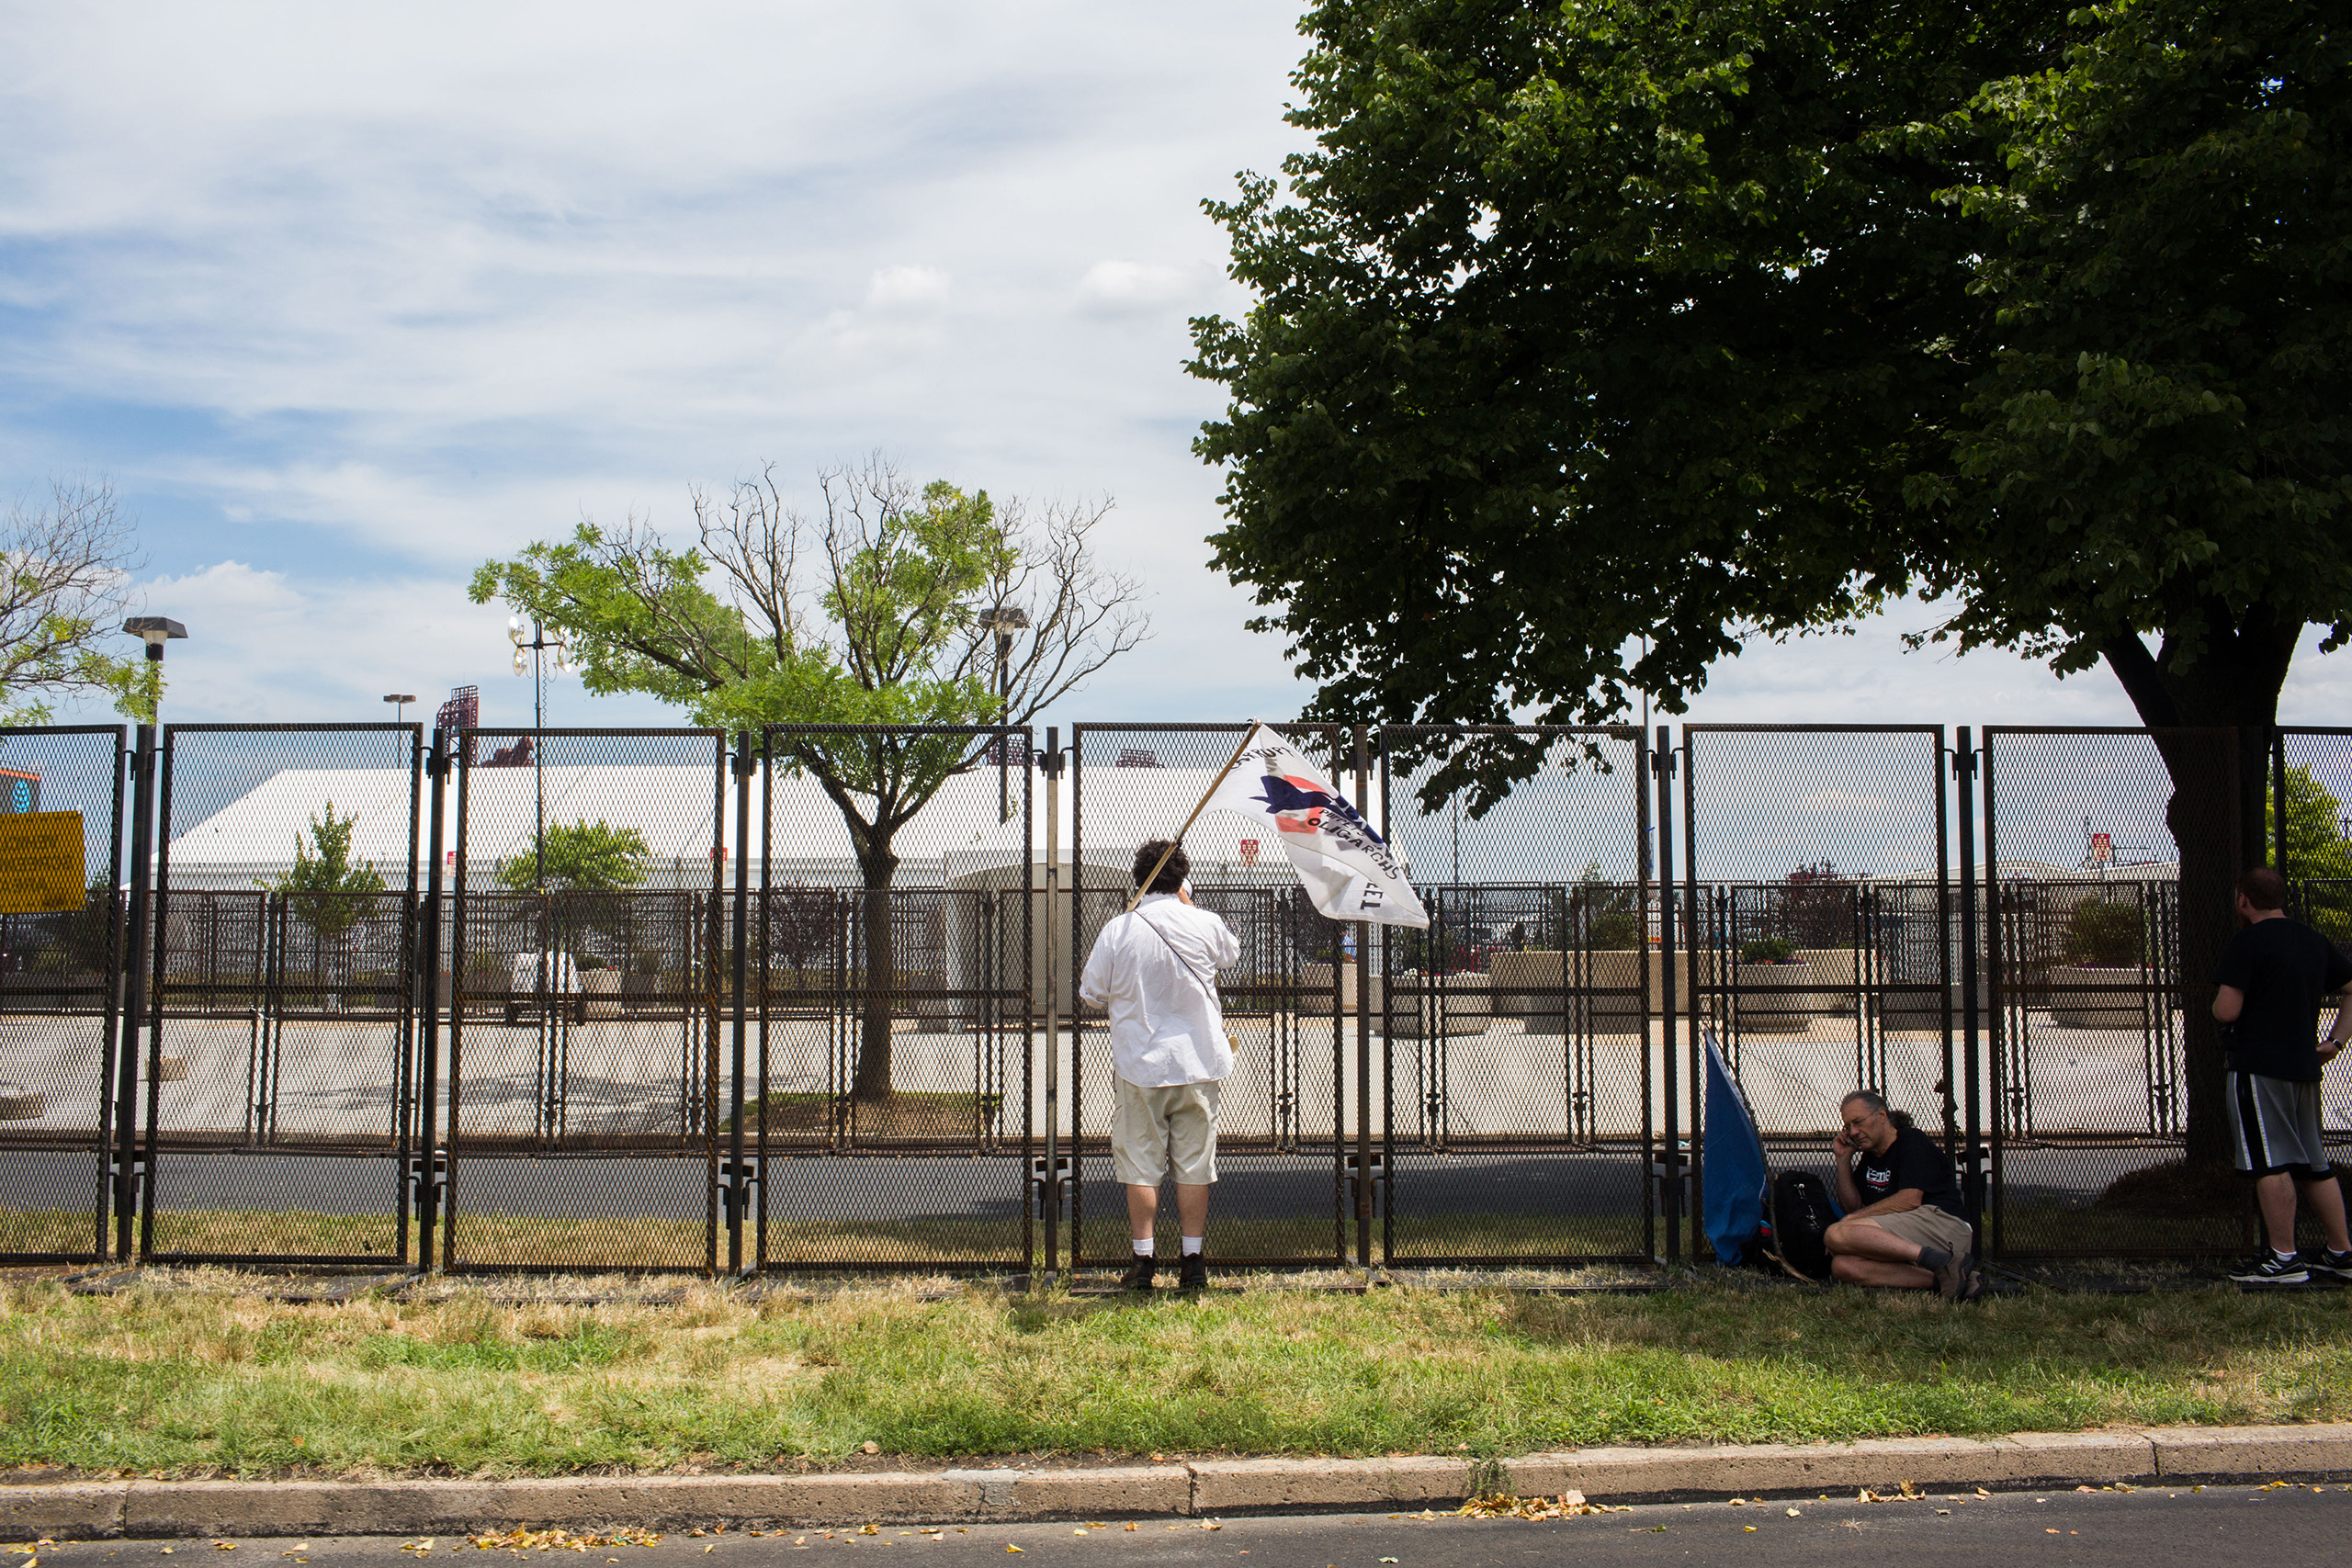 A protestor stands at a security fence outside the Democratic National Convention at the Wells Fargo Center in Philadelphia on July 26, 2016.